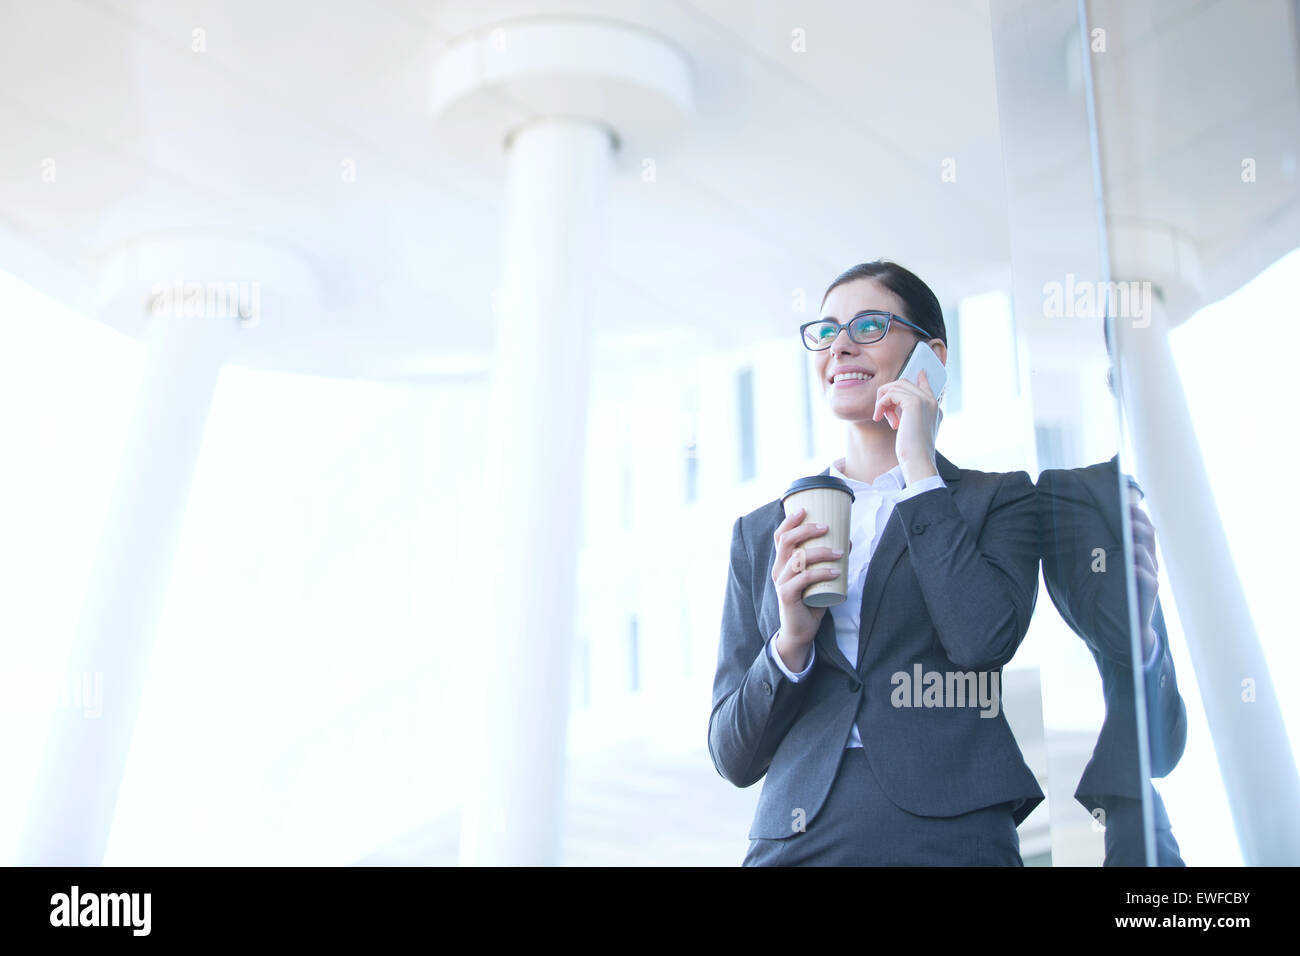 Businesswoman using cell phone while holding disposable cup outdoors - Stock Image